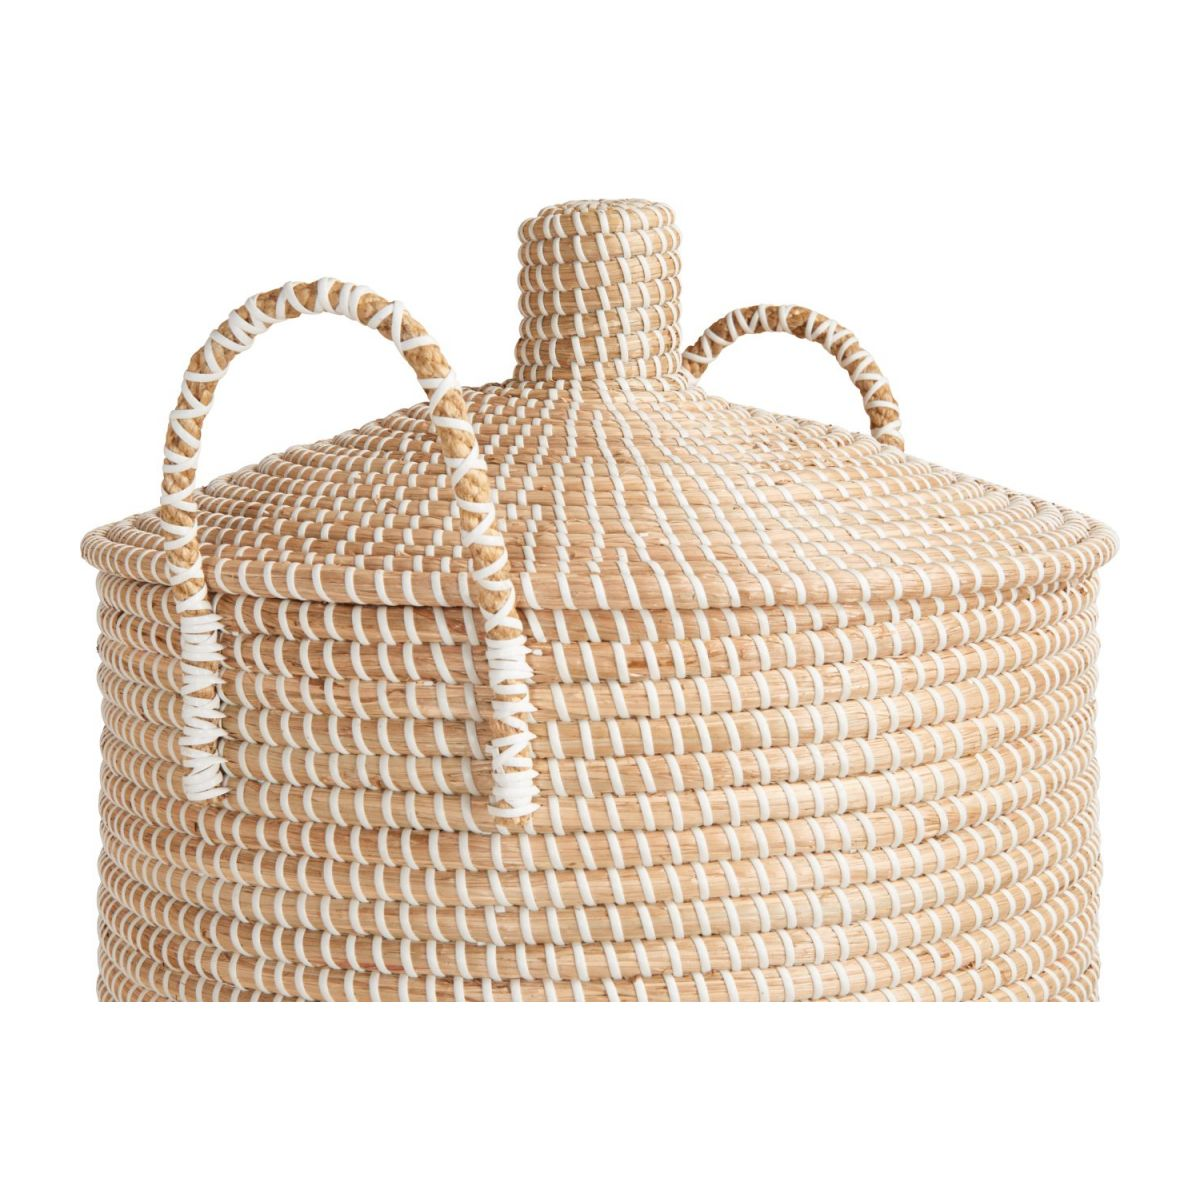 Basket 70cm with cover made of seagrass n°4